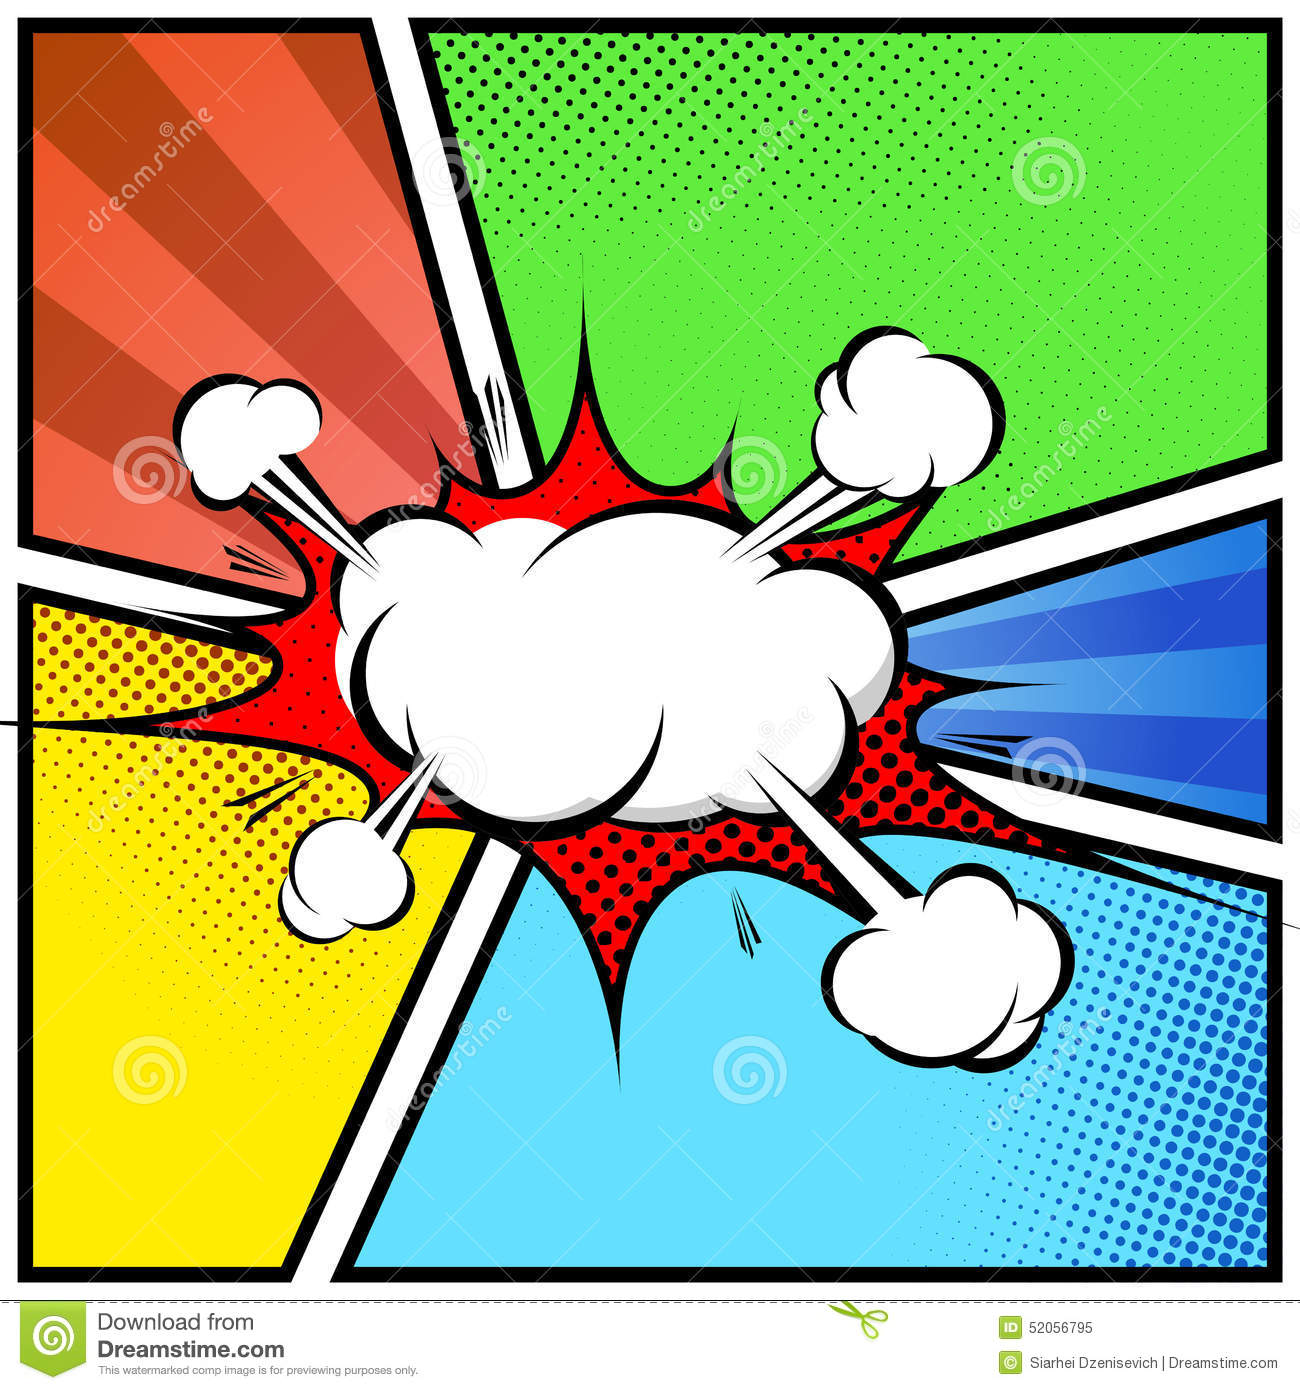 Explosion cloud abstract comic book style frame page template explosion cloud abstract comic book style frame page template toneelgroepblik Gallery